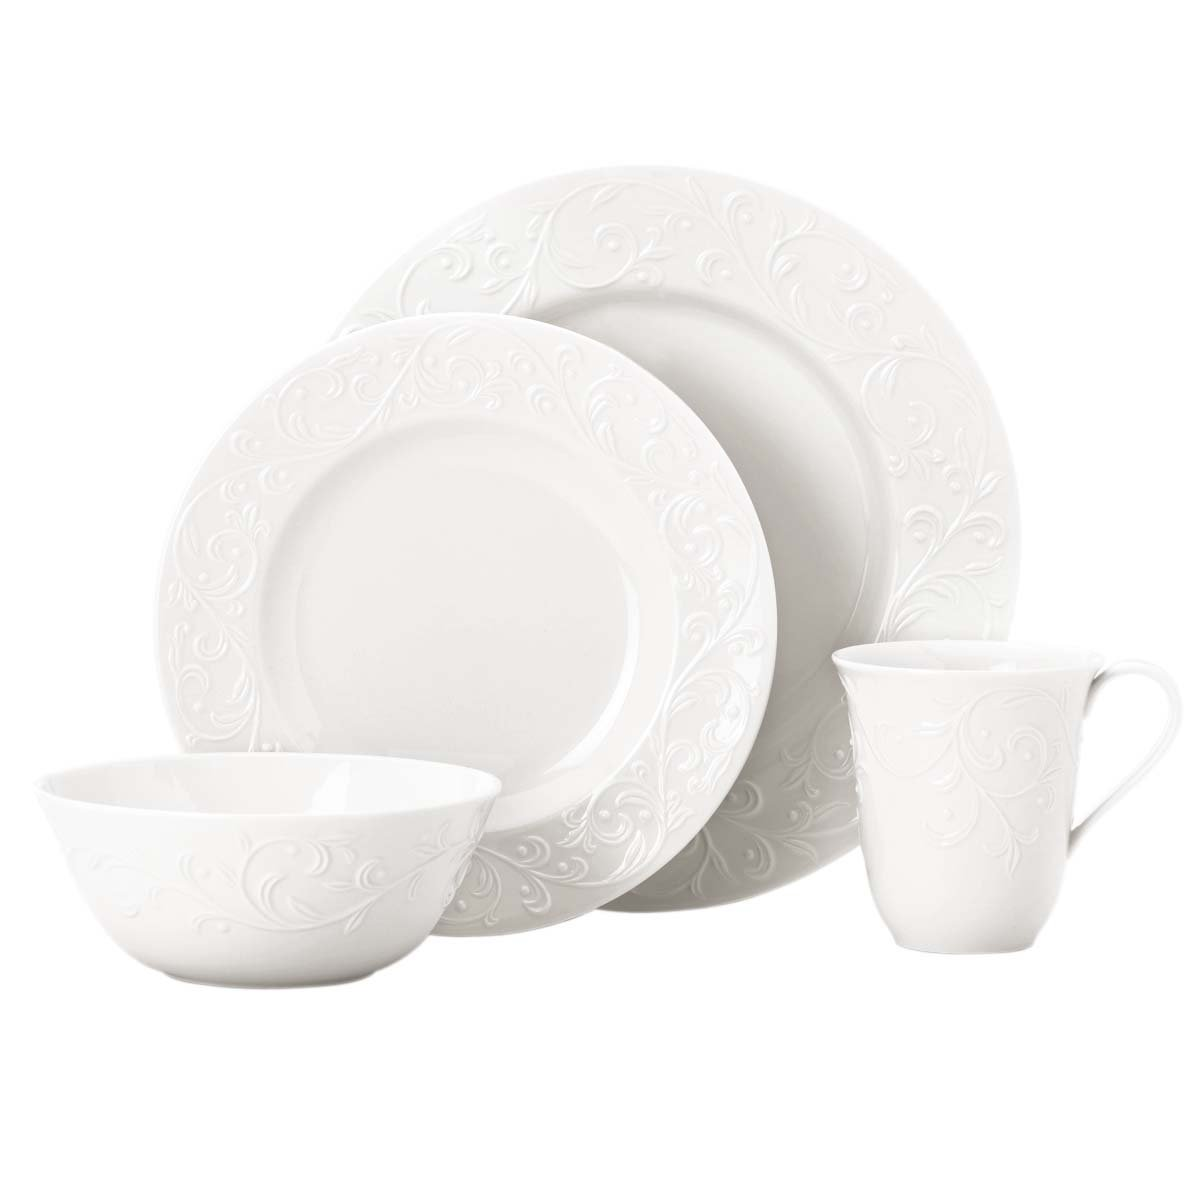 Amazon.com Lenox Opal Innocence Carved 4-Piece Place Setting Dinnerware Sets Kitchen u0026 Dining  sc 1 st  Amazon.com & Lenox Opal Innocence Carved 4-Piece Place Setting